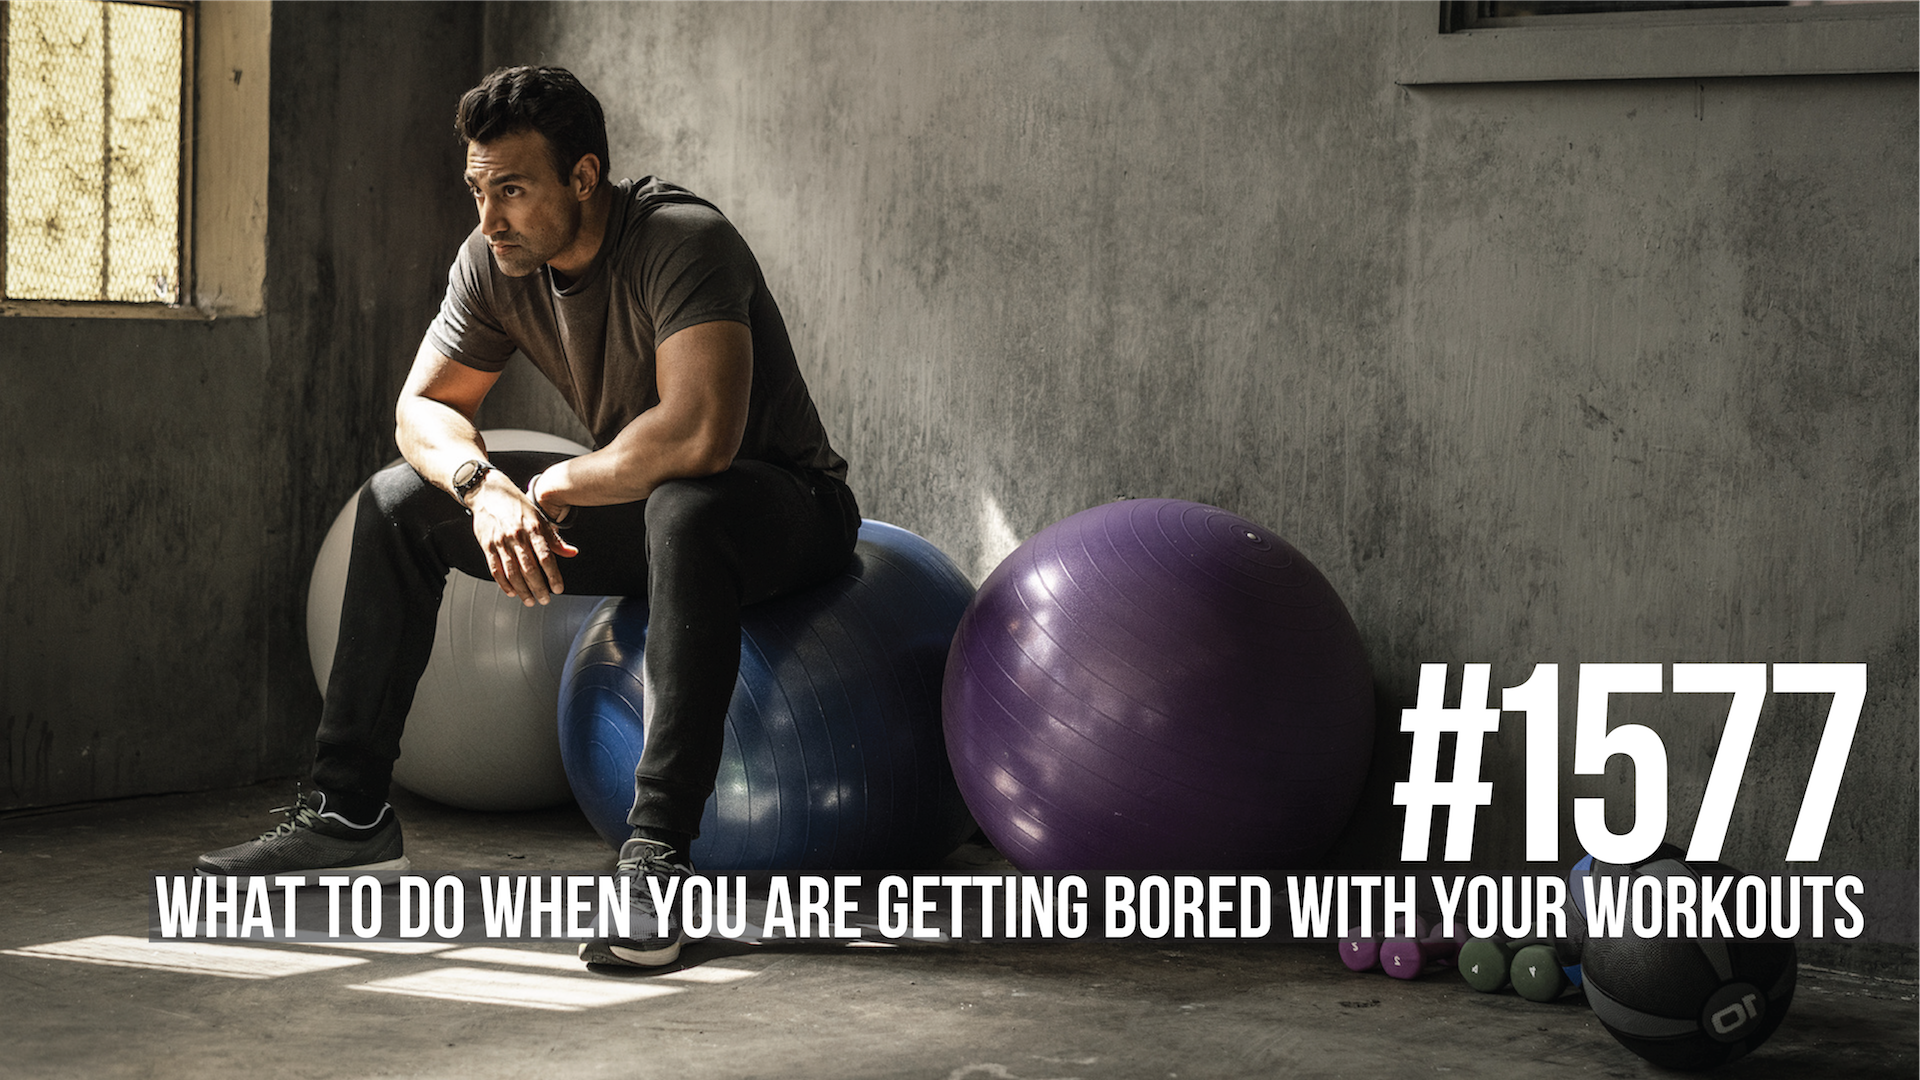 1577: What to Do When You Are Getting Bored With Your Workouts